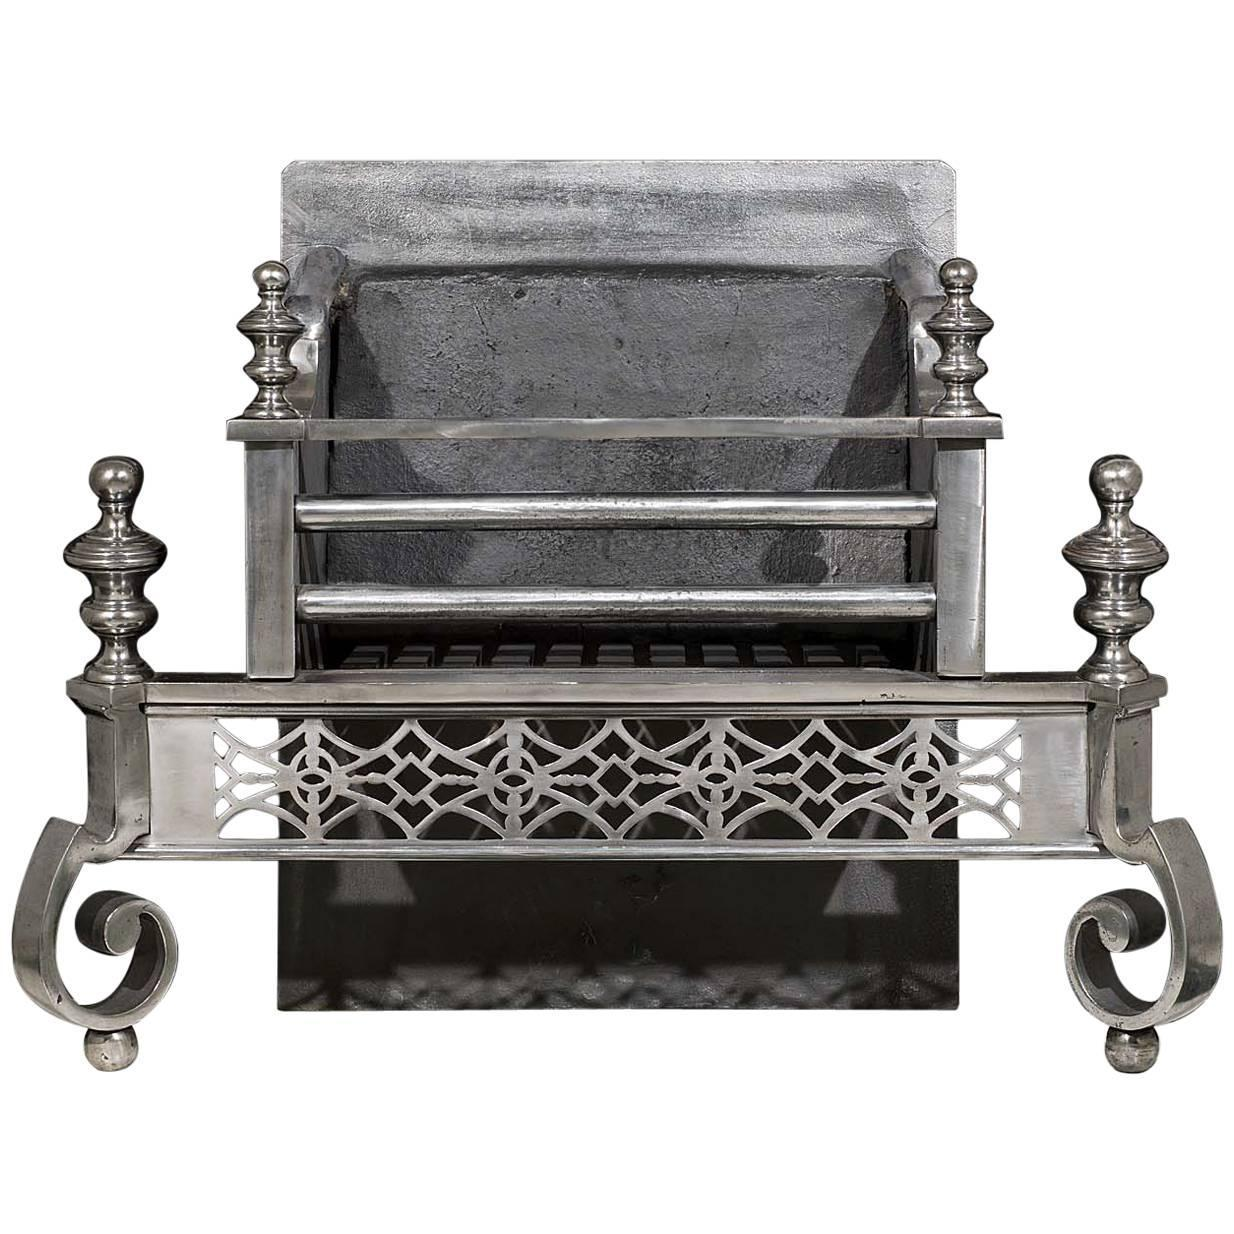 Polished Steel Antique Georgian Style Antique Fire Grate For Sale At 1stdibs